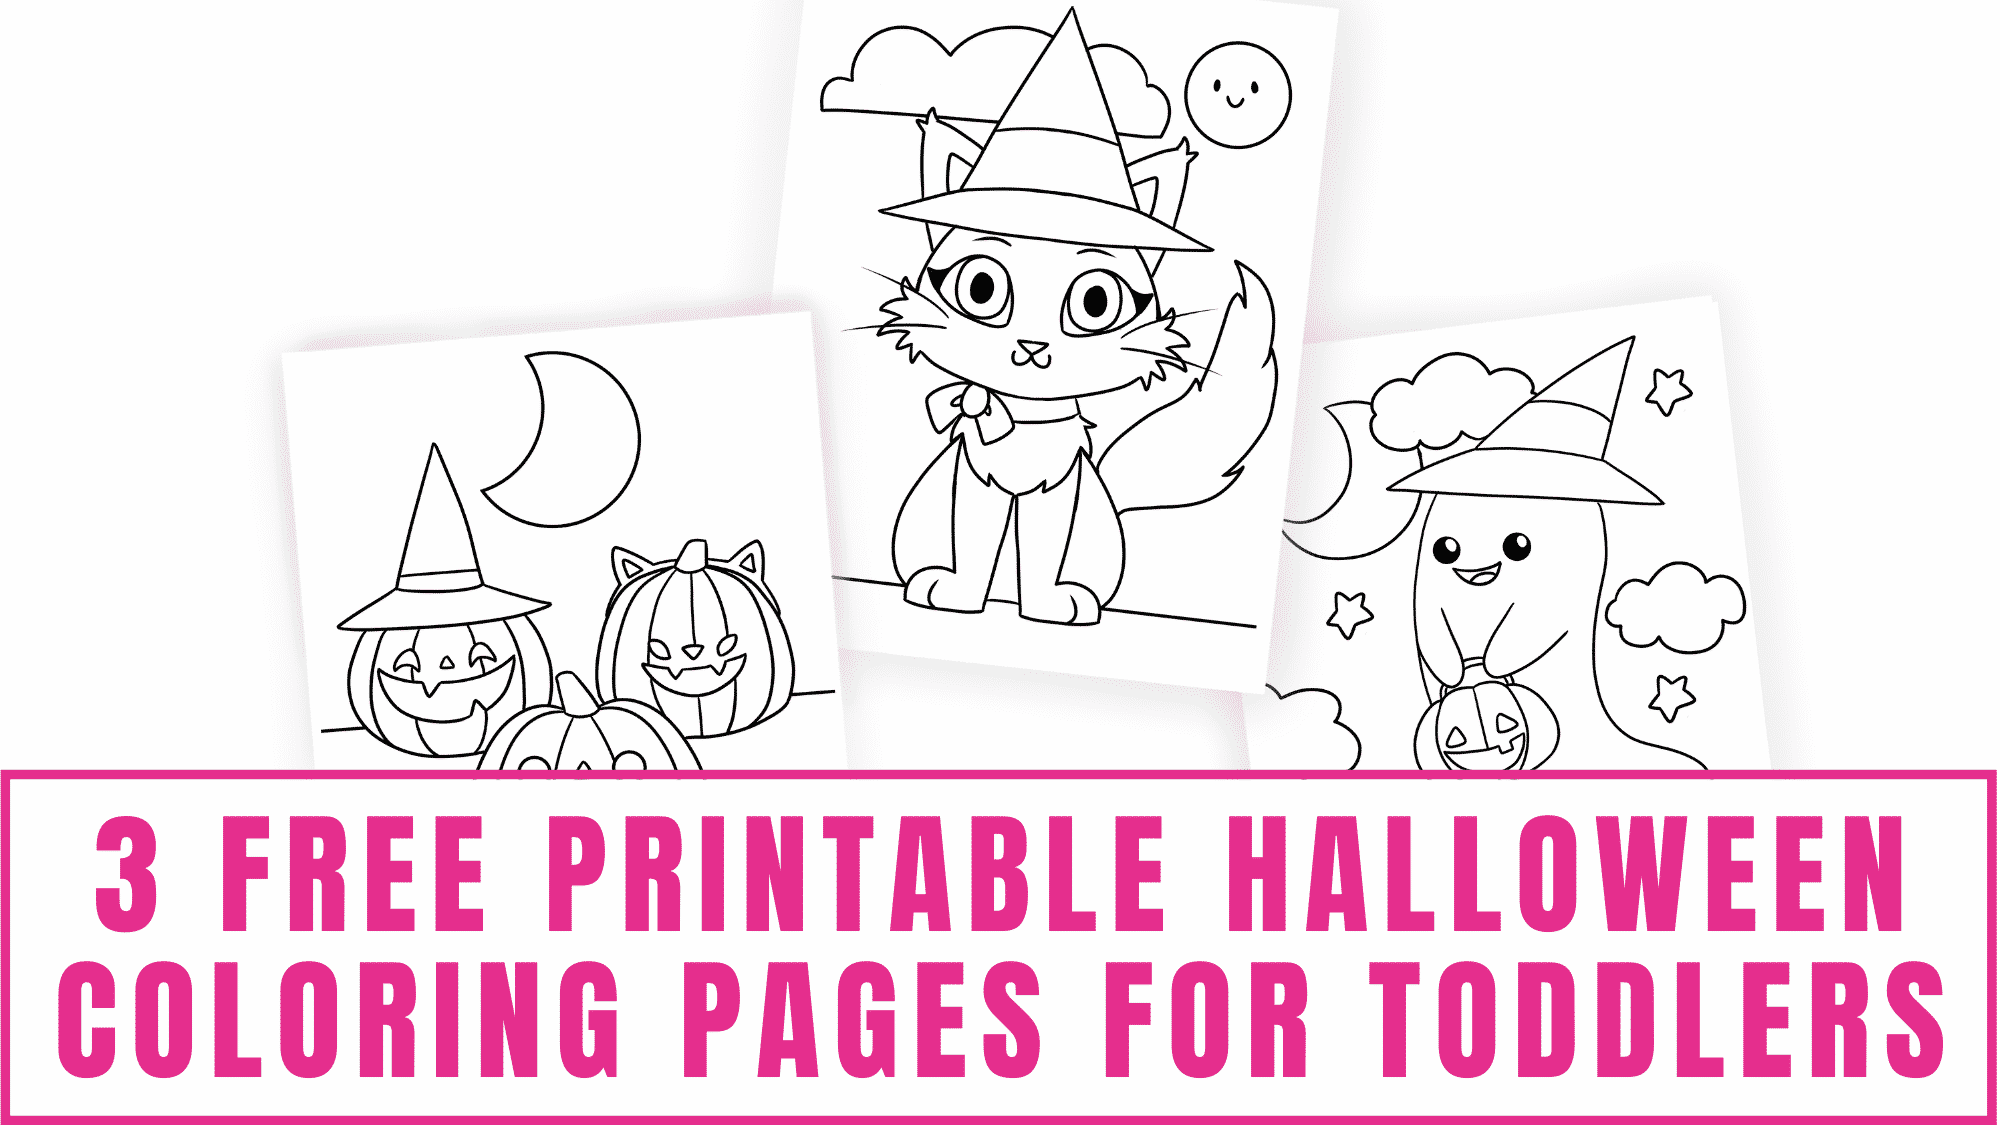 These cute Halloween coloring pages make perfect free printable Halloween coloring pages for toddlers or even older kids.